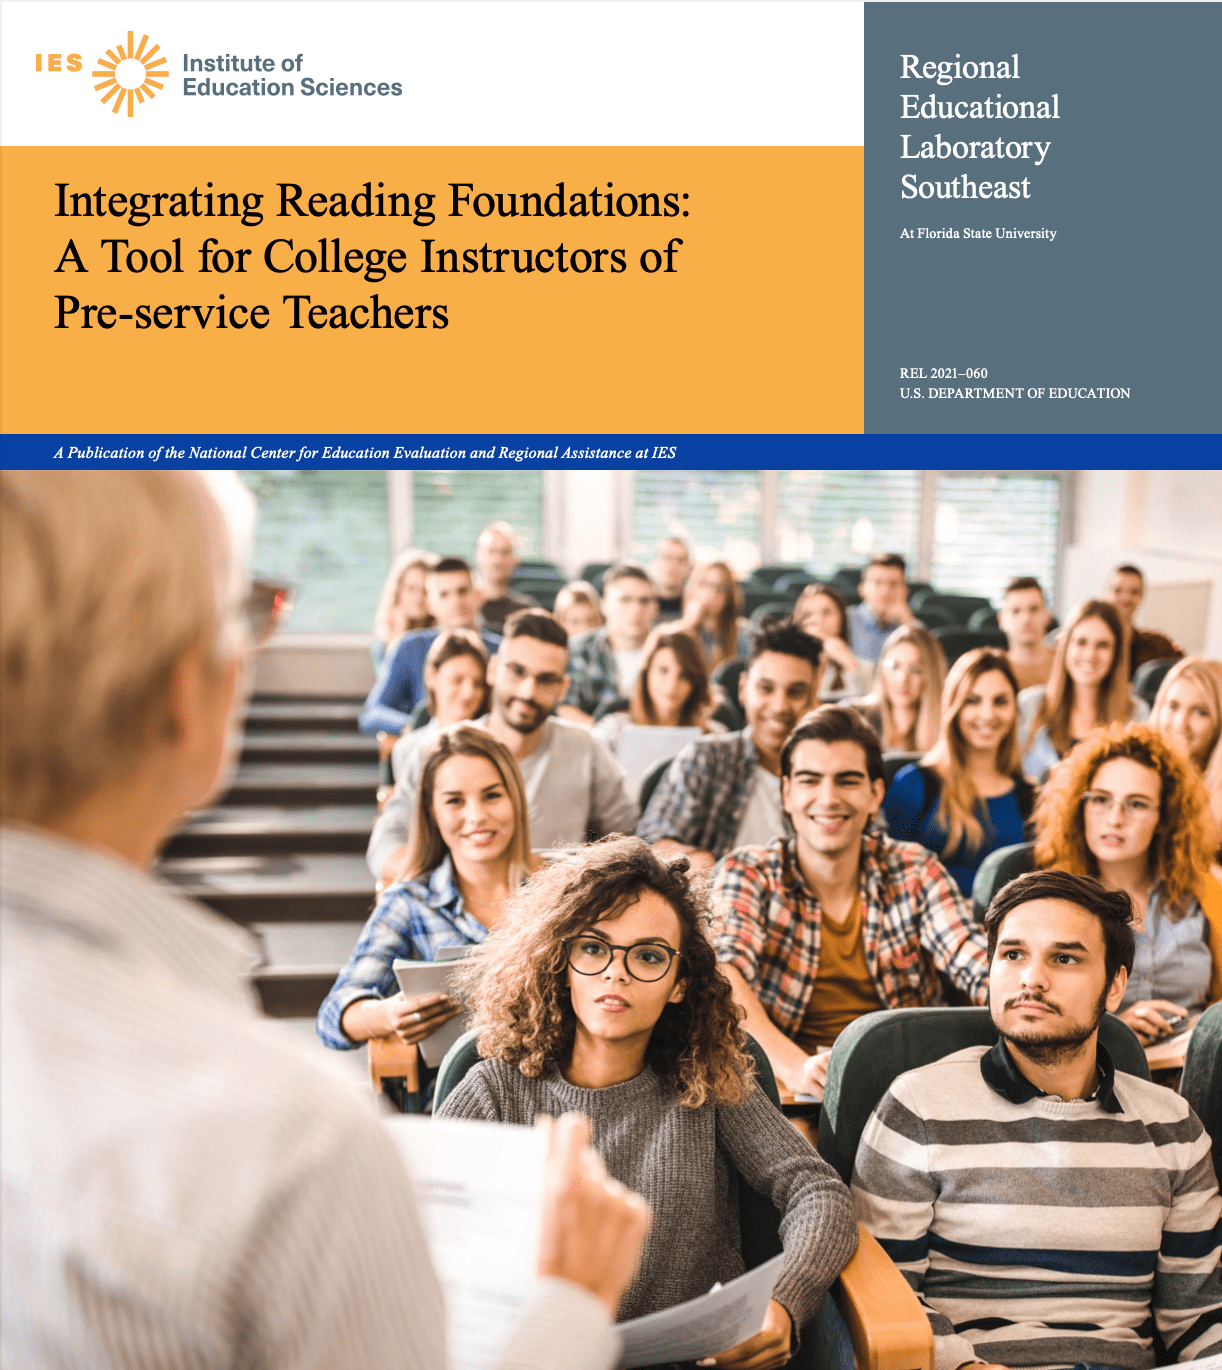 Cover of toolkit shows college students in lecture hall.